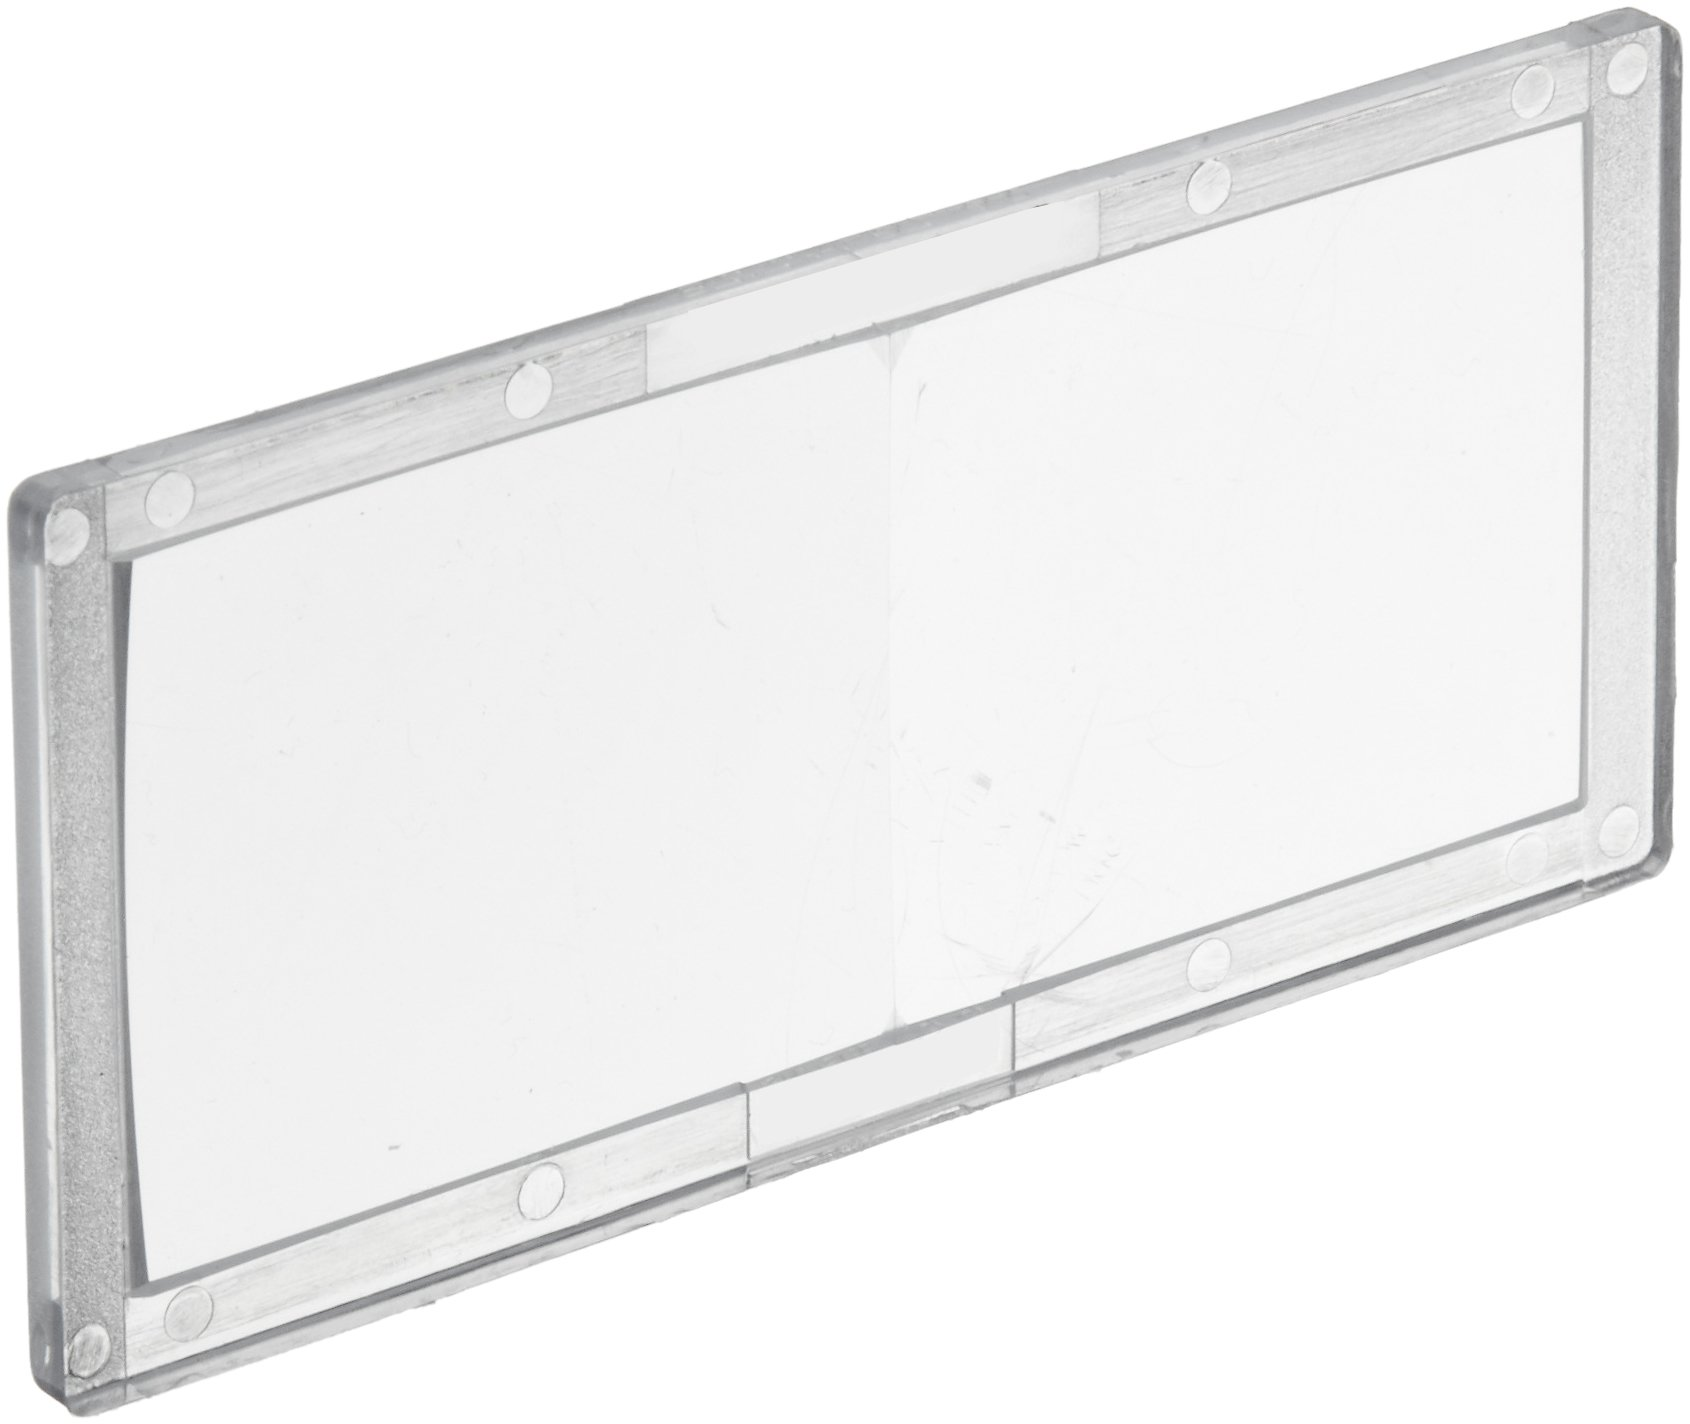 Jackson Safety 16058 Magnifying Plate for W60 TrueSight Digital Auto-Darkening Filter, 1.50 Focal Power, Clear (Case of 6)